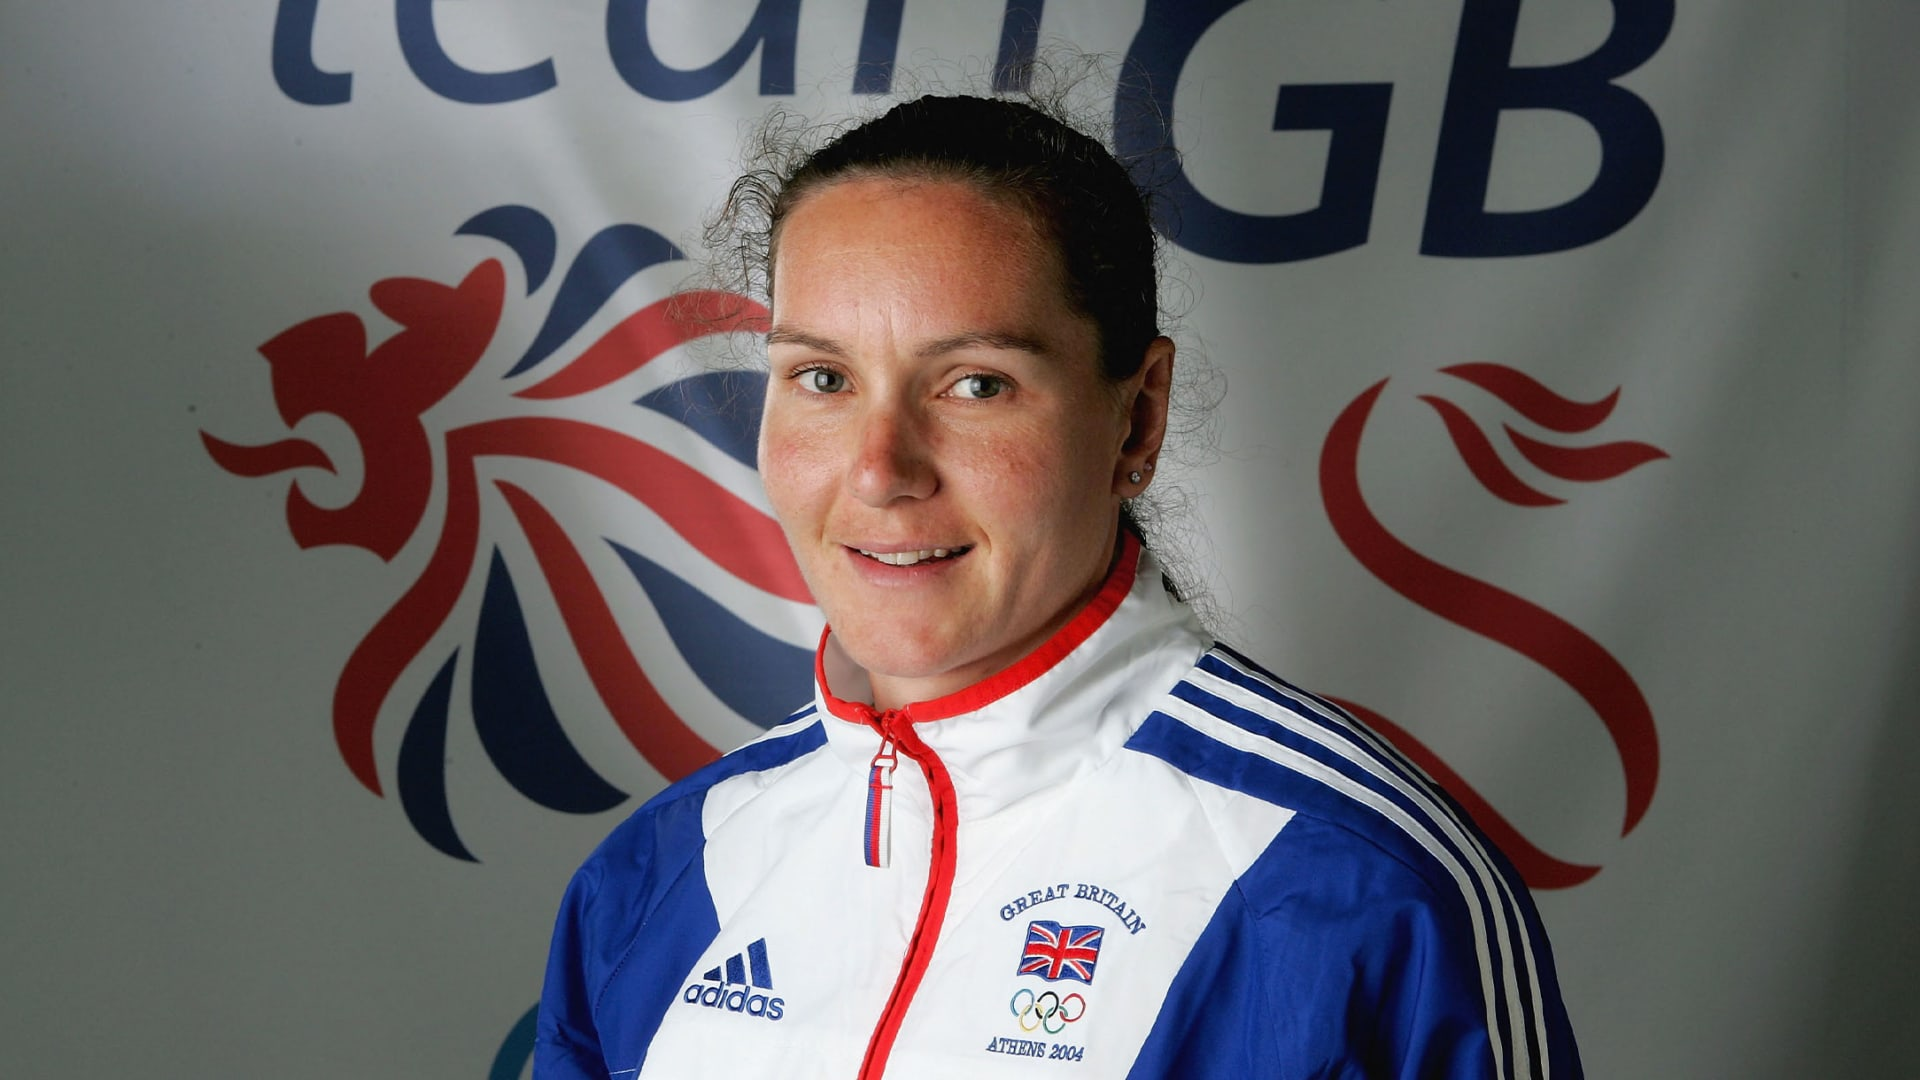 Cath Bishop, a member of the Great Britain Rowing Team, during the kitting out of the British Olympic Team for the 2004 Olympic Games in Athens pictured at Earls Court on July 7, 2004 in London.